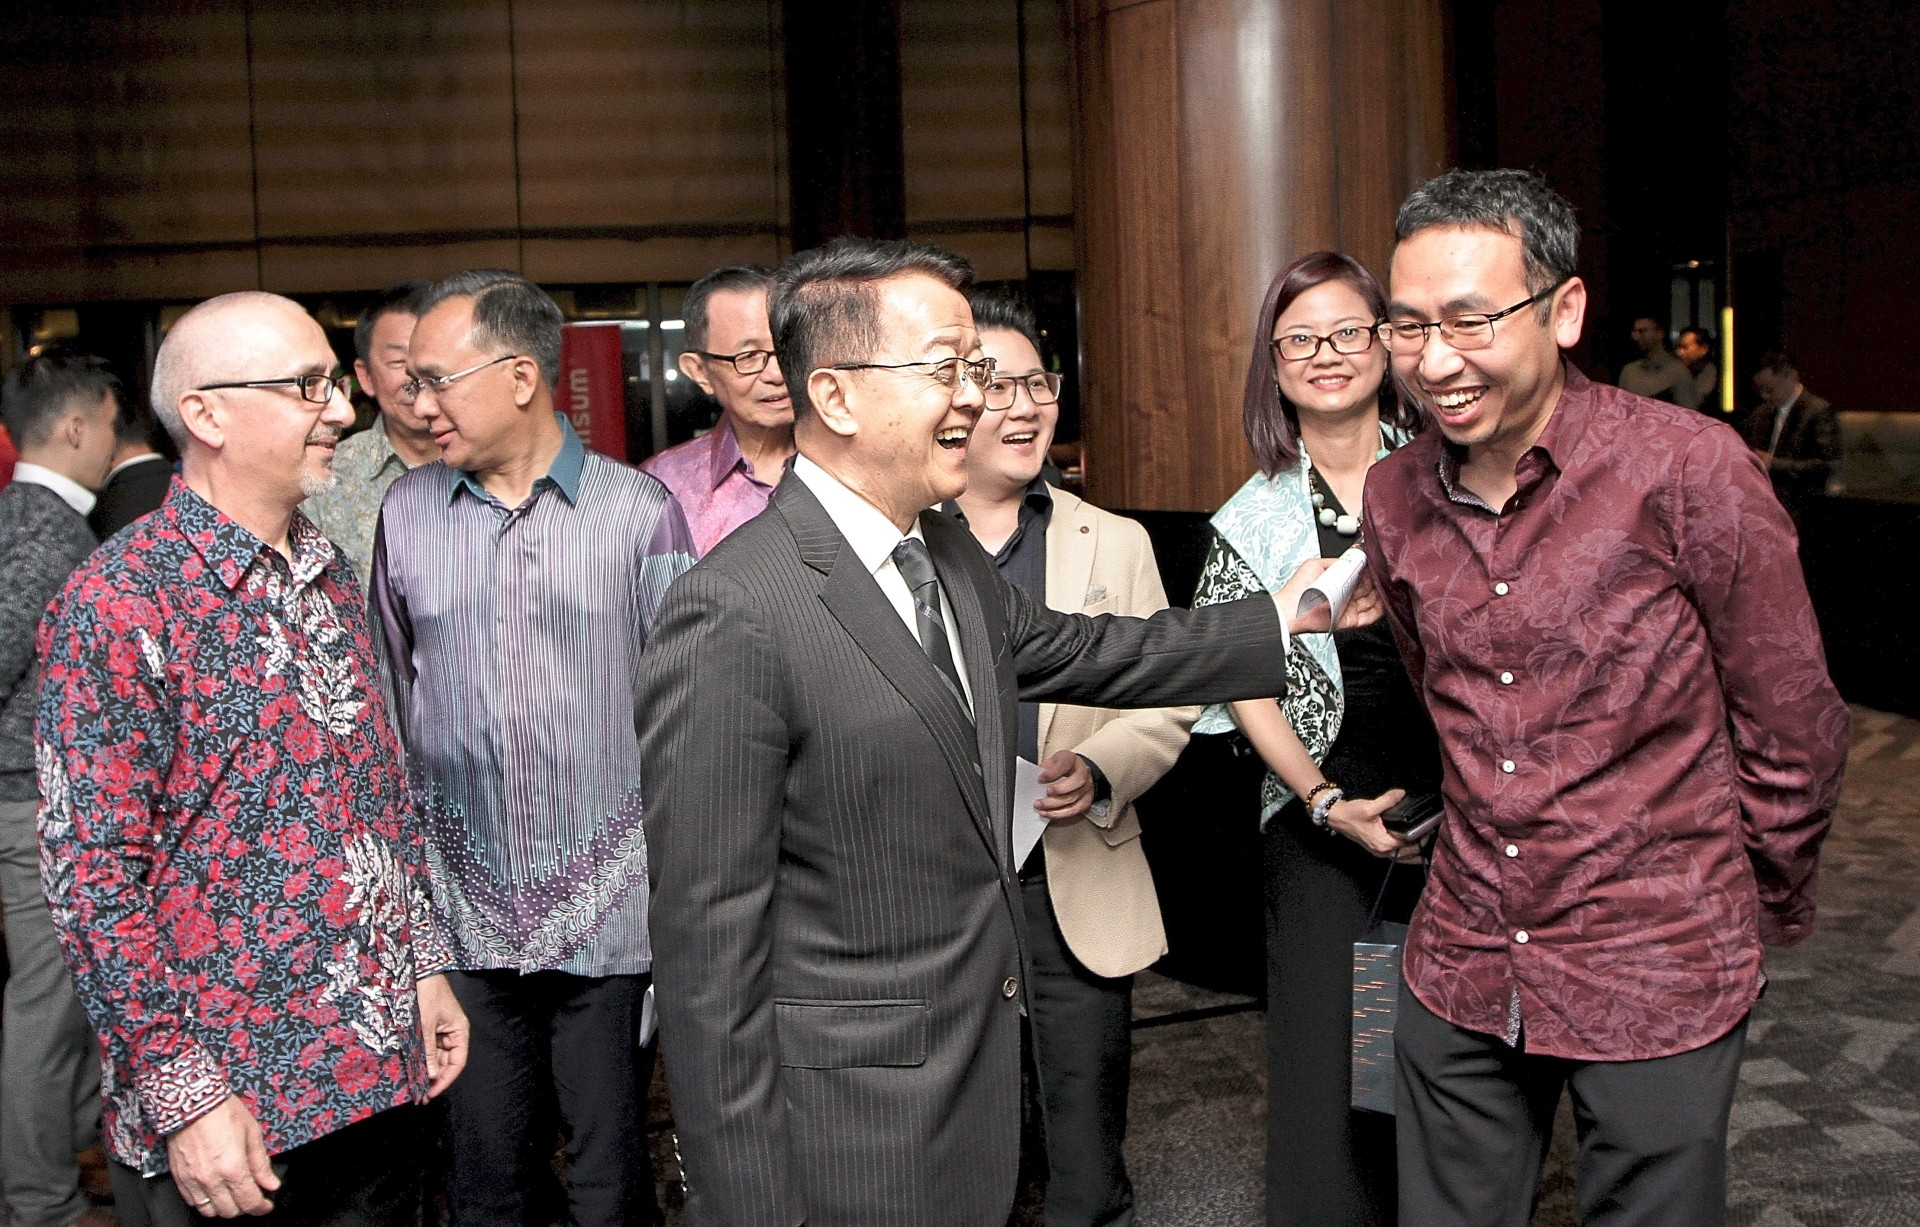 A networking platform: Cheah (centre, in black suit) greets Mah (right), while Star Media Group Bhd chief executive officer Andreas Vogiatzakis (left) and chief business officer Lydia Wang (second from right) look on.